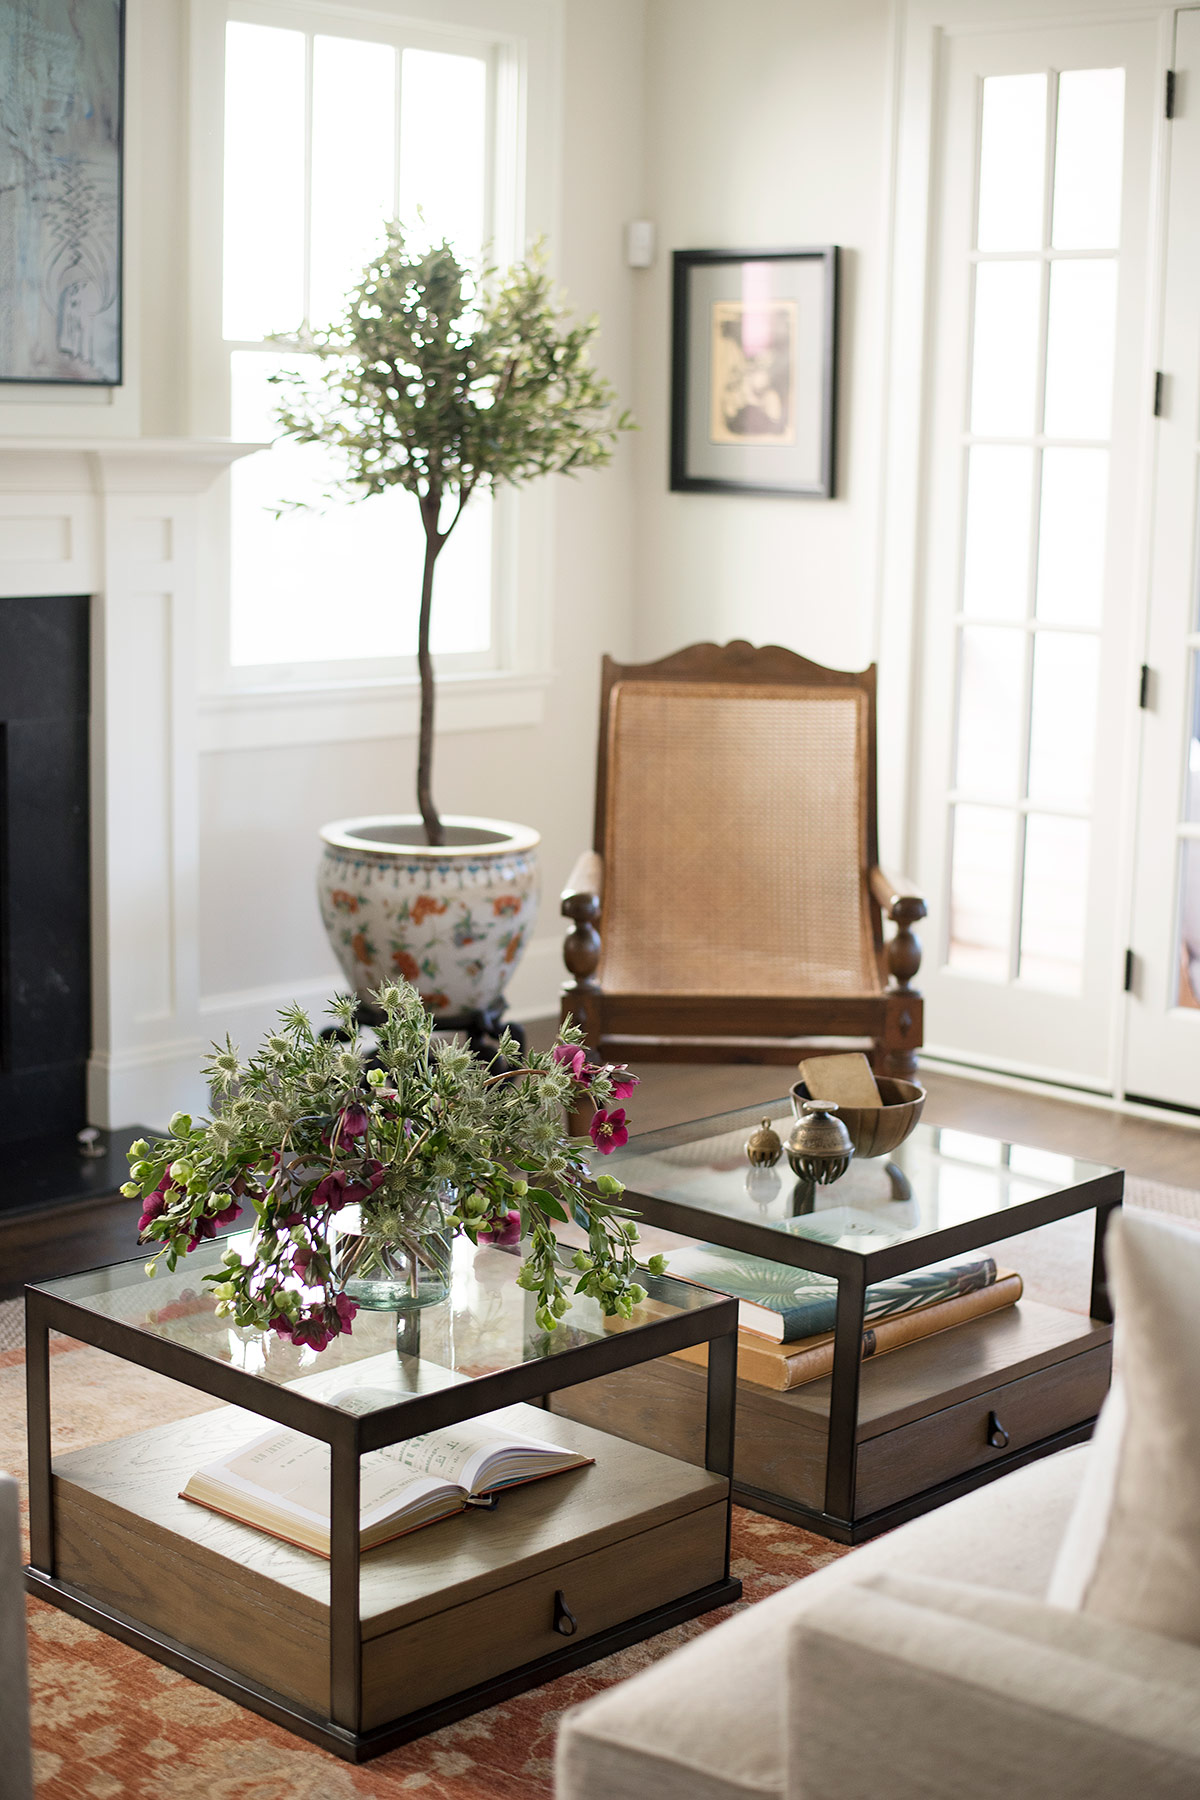 Matching glass coffee tables with books and flowers